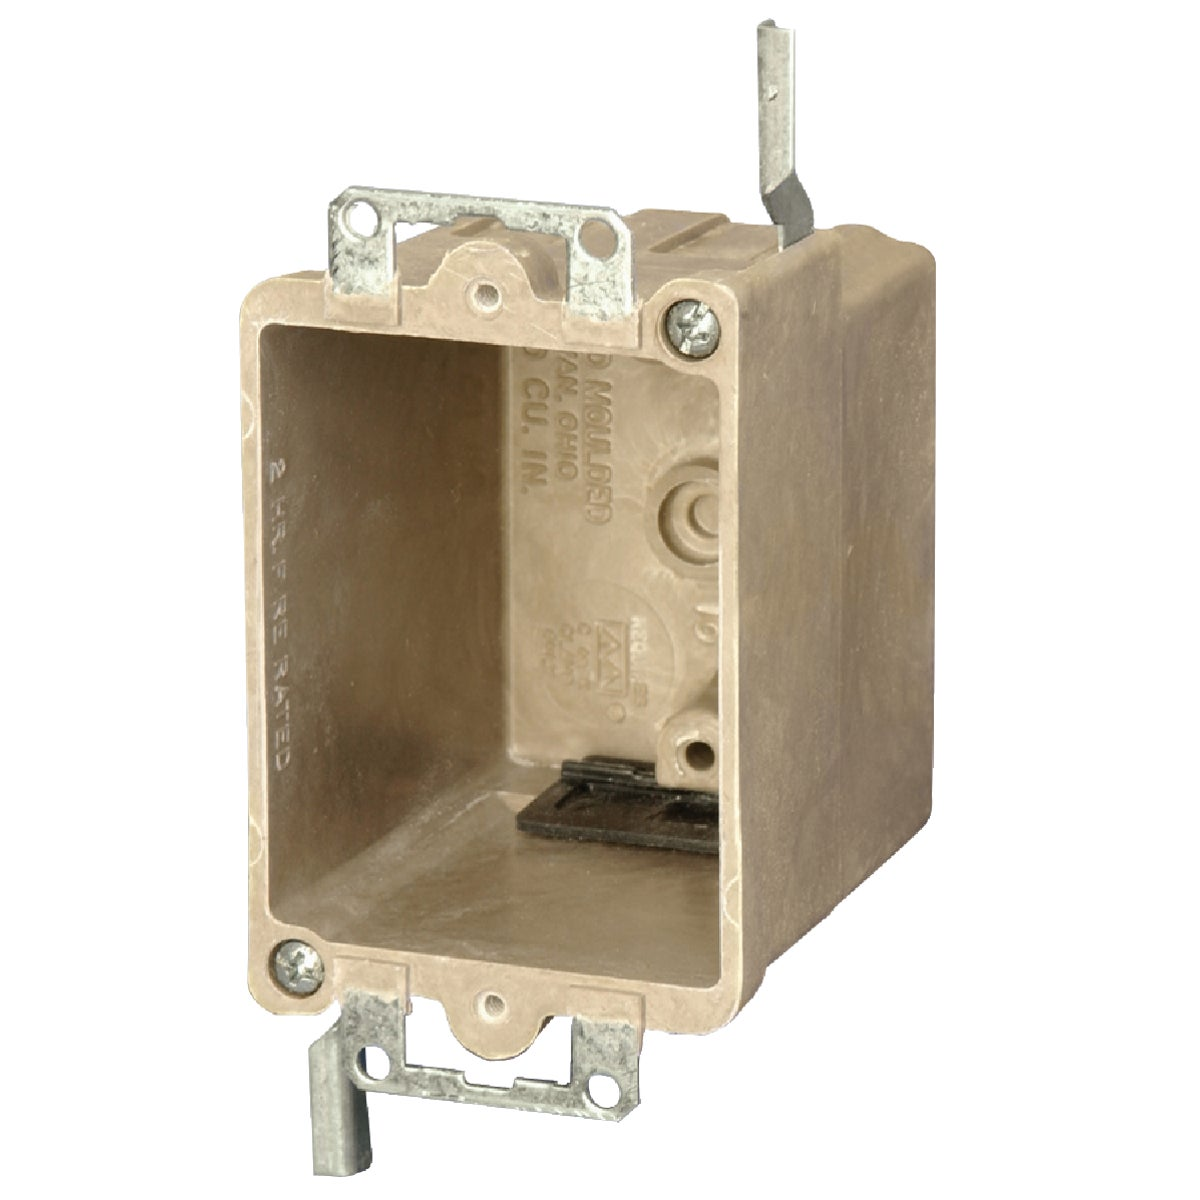 FIBERGLASS SWITCH BOX - 9363=EWK by Allied Moulded